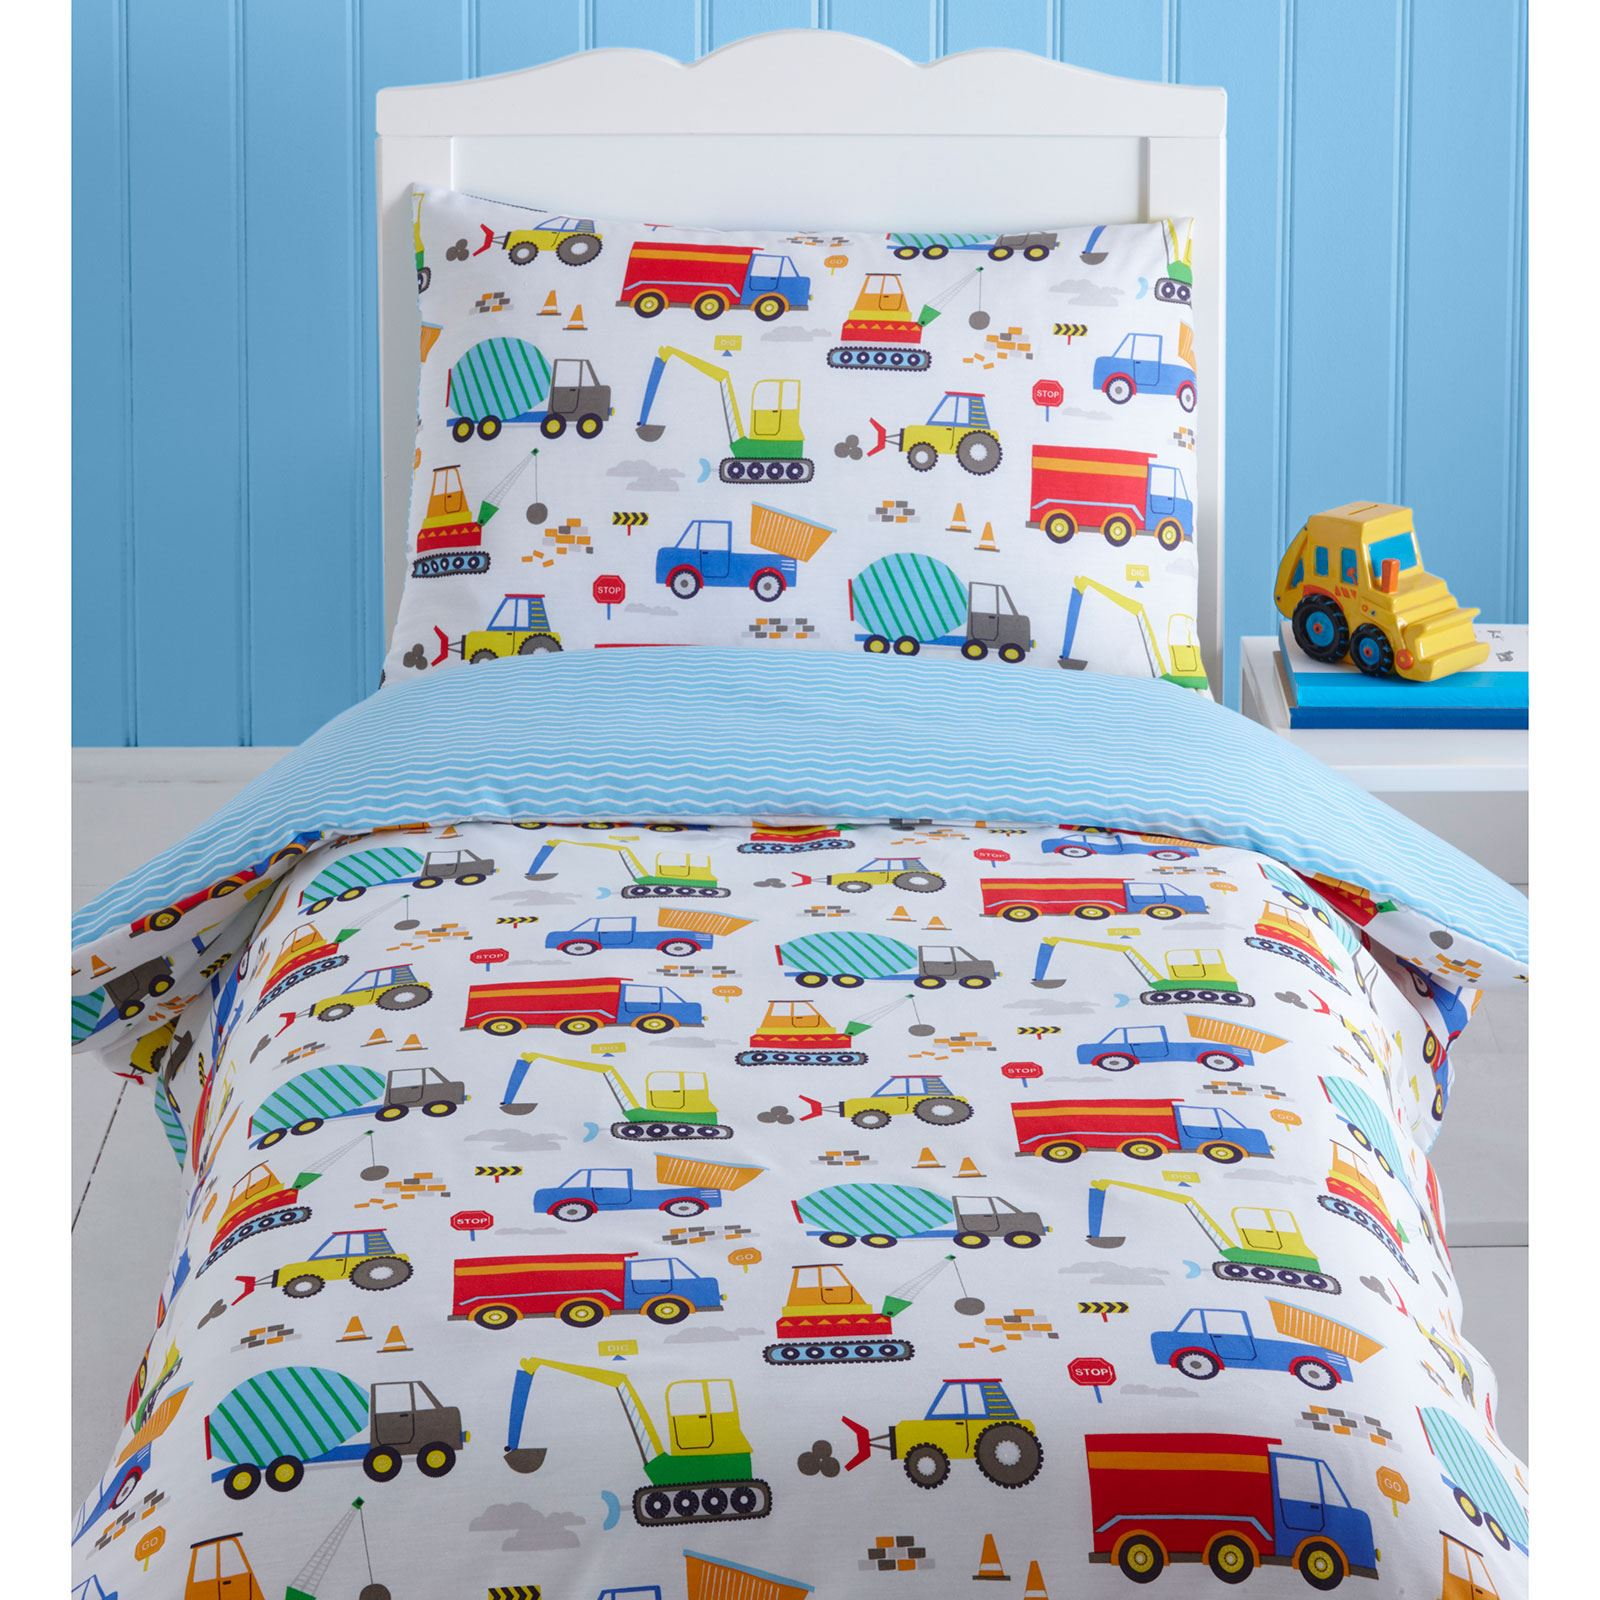 Toddler Bedding Sets Trucks